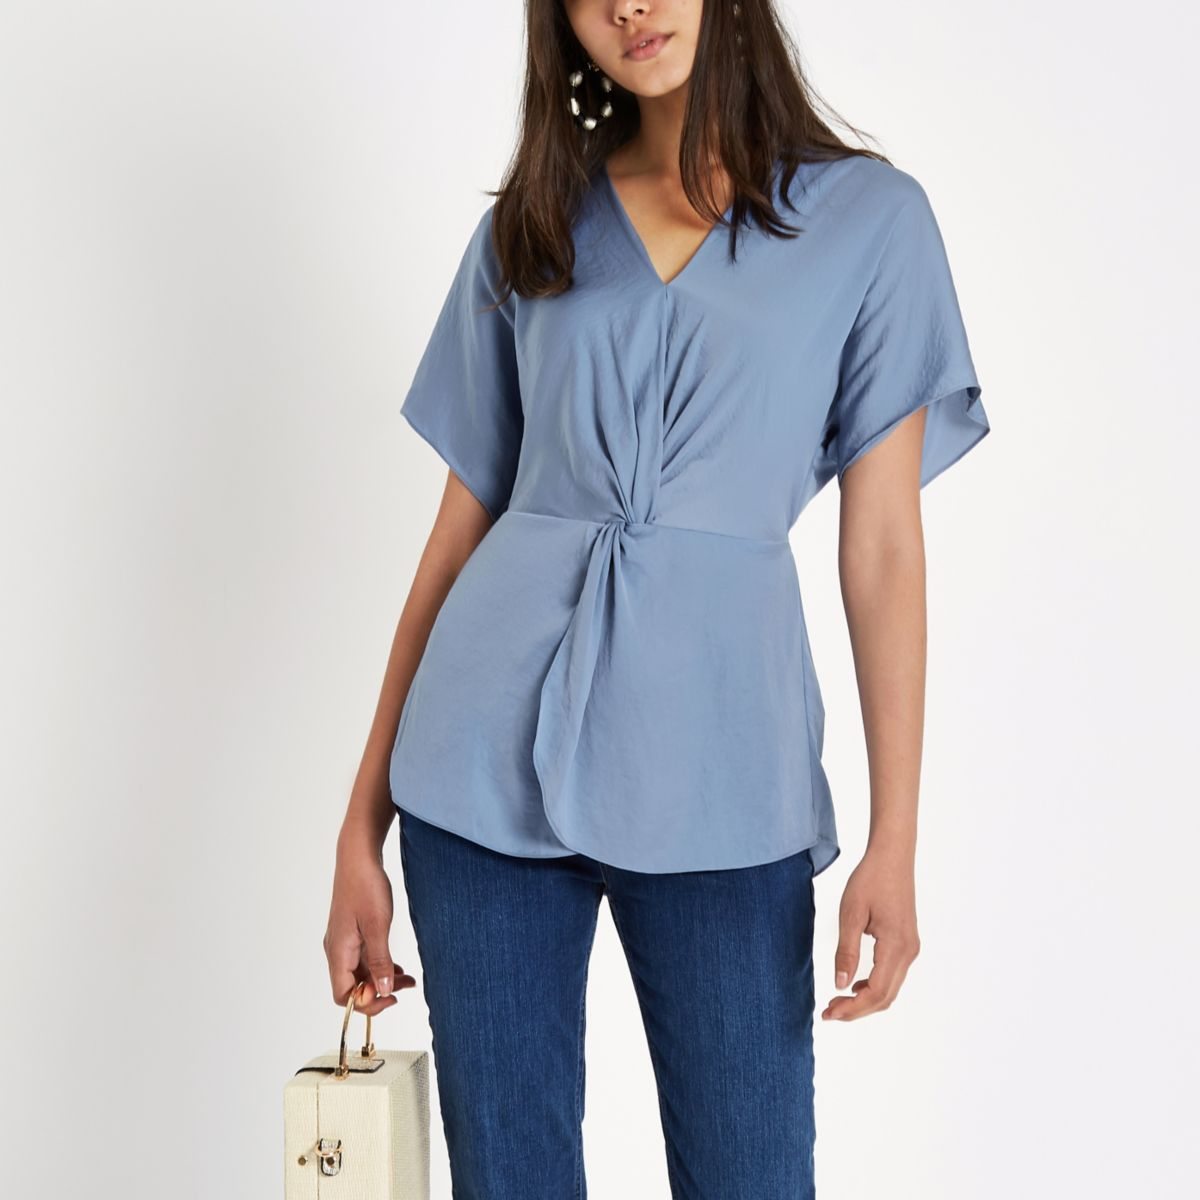 Blue Satin Knot Front Shirt                                  Blue Satin Knot Front Shirt by River Island